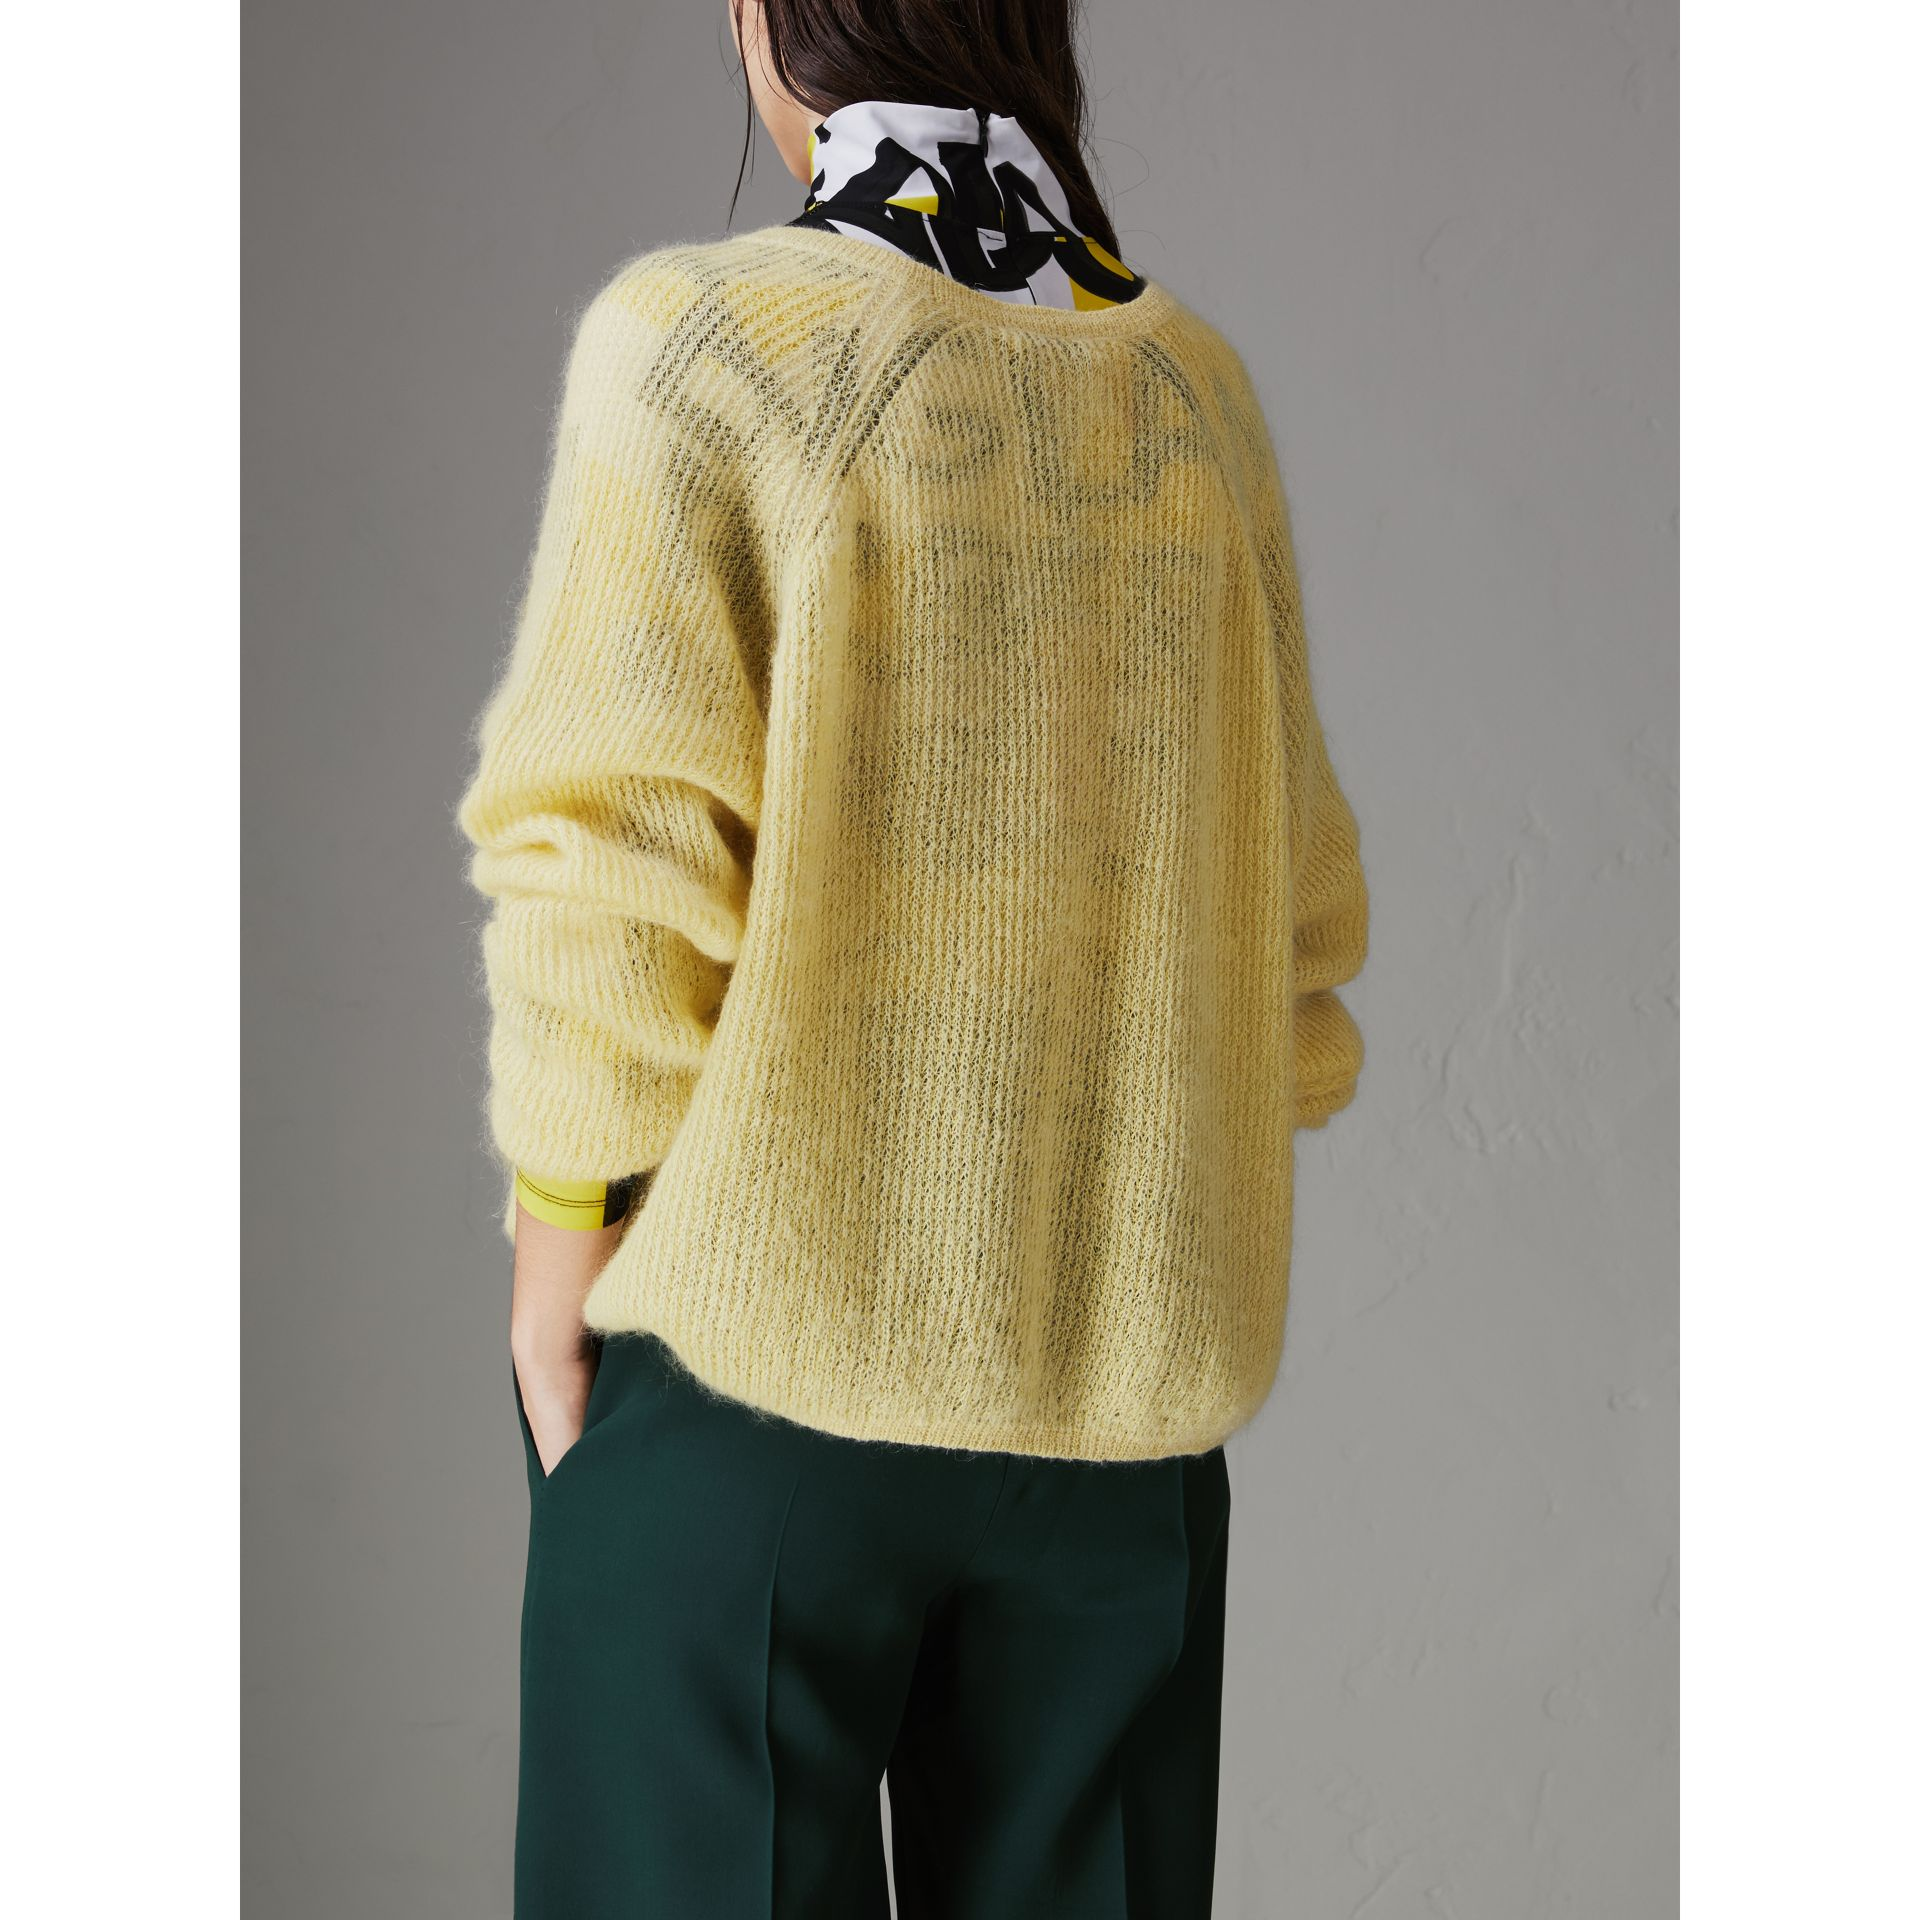 Mohair Silk Blend Sweater in Yellow Barley - Women | Burberry Hong Kong - gallery image 2